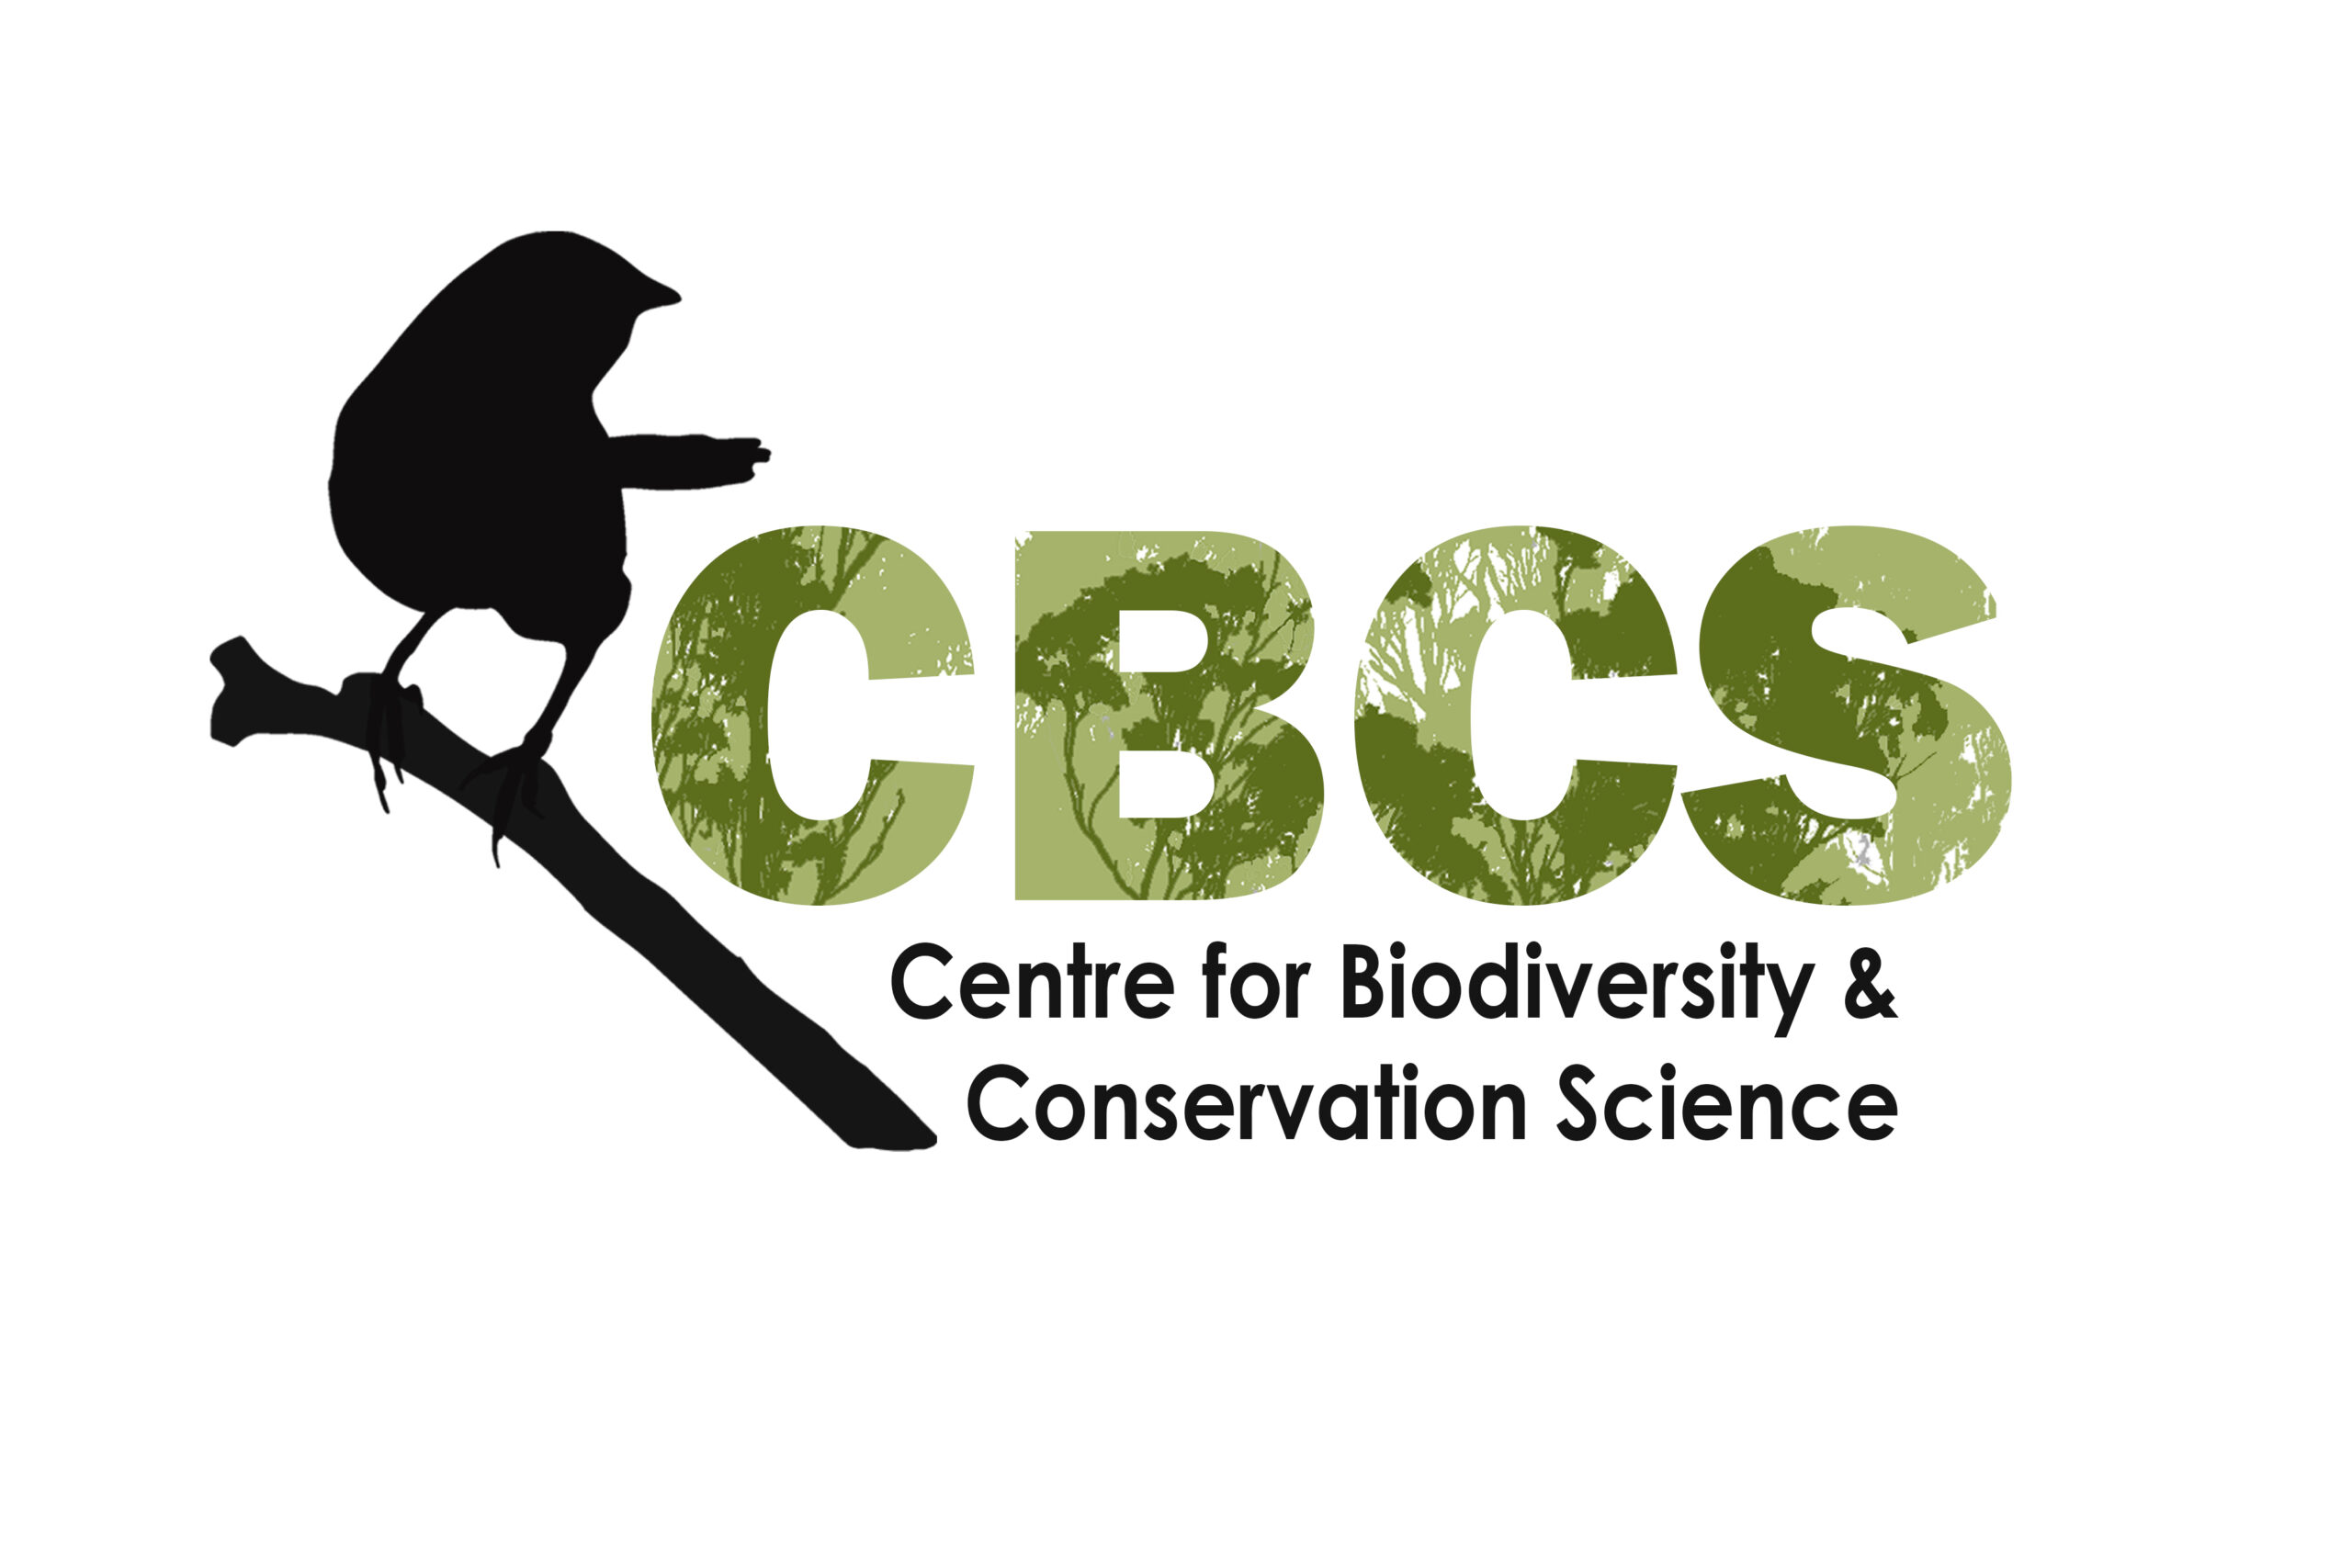 A world-leading solution-oriented research centre for biodiversity conservation